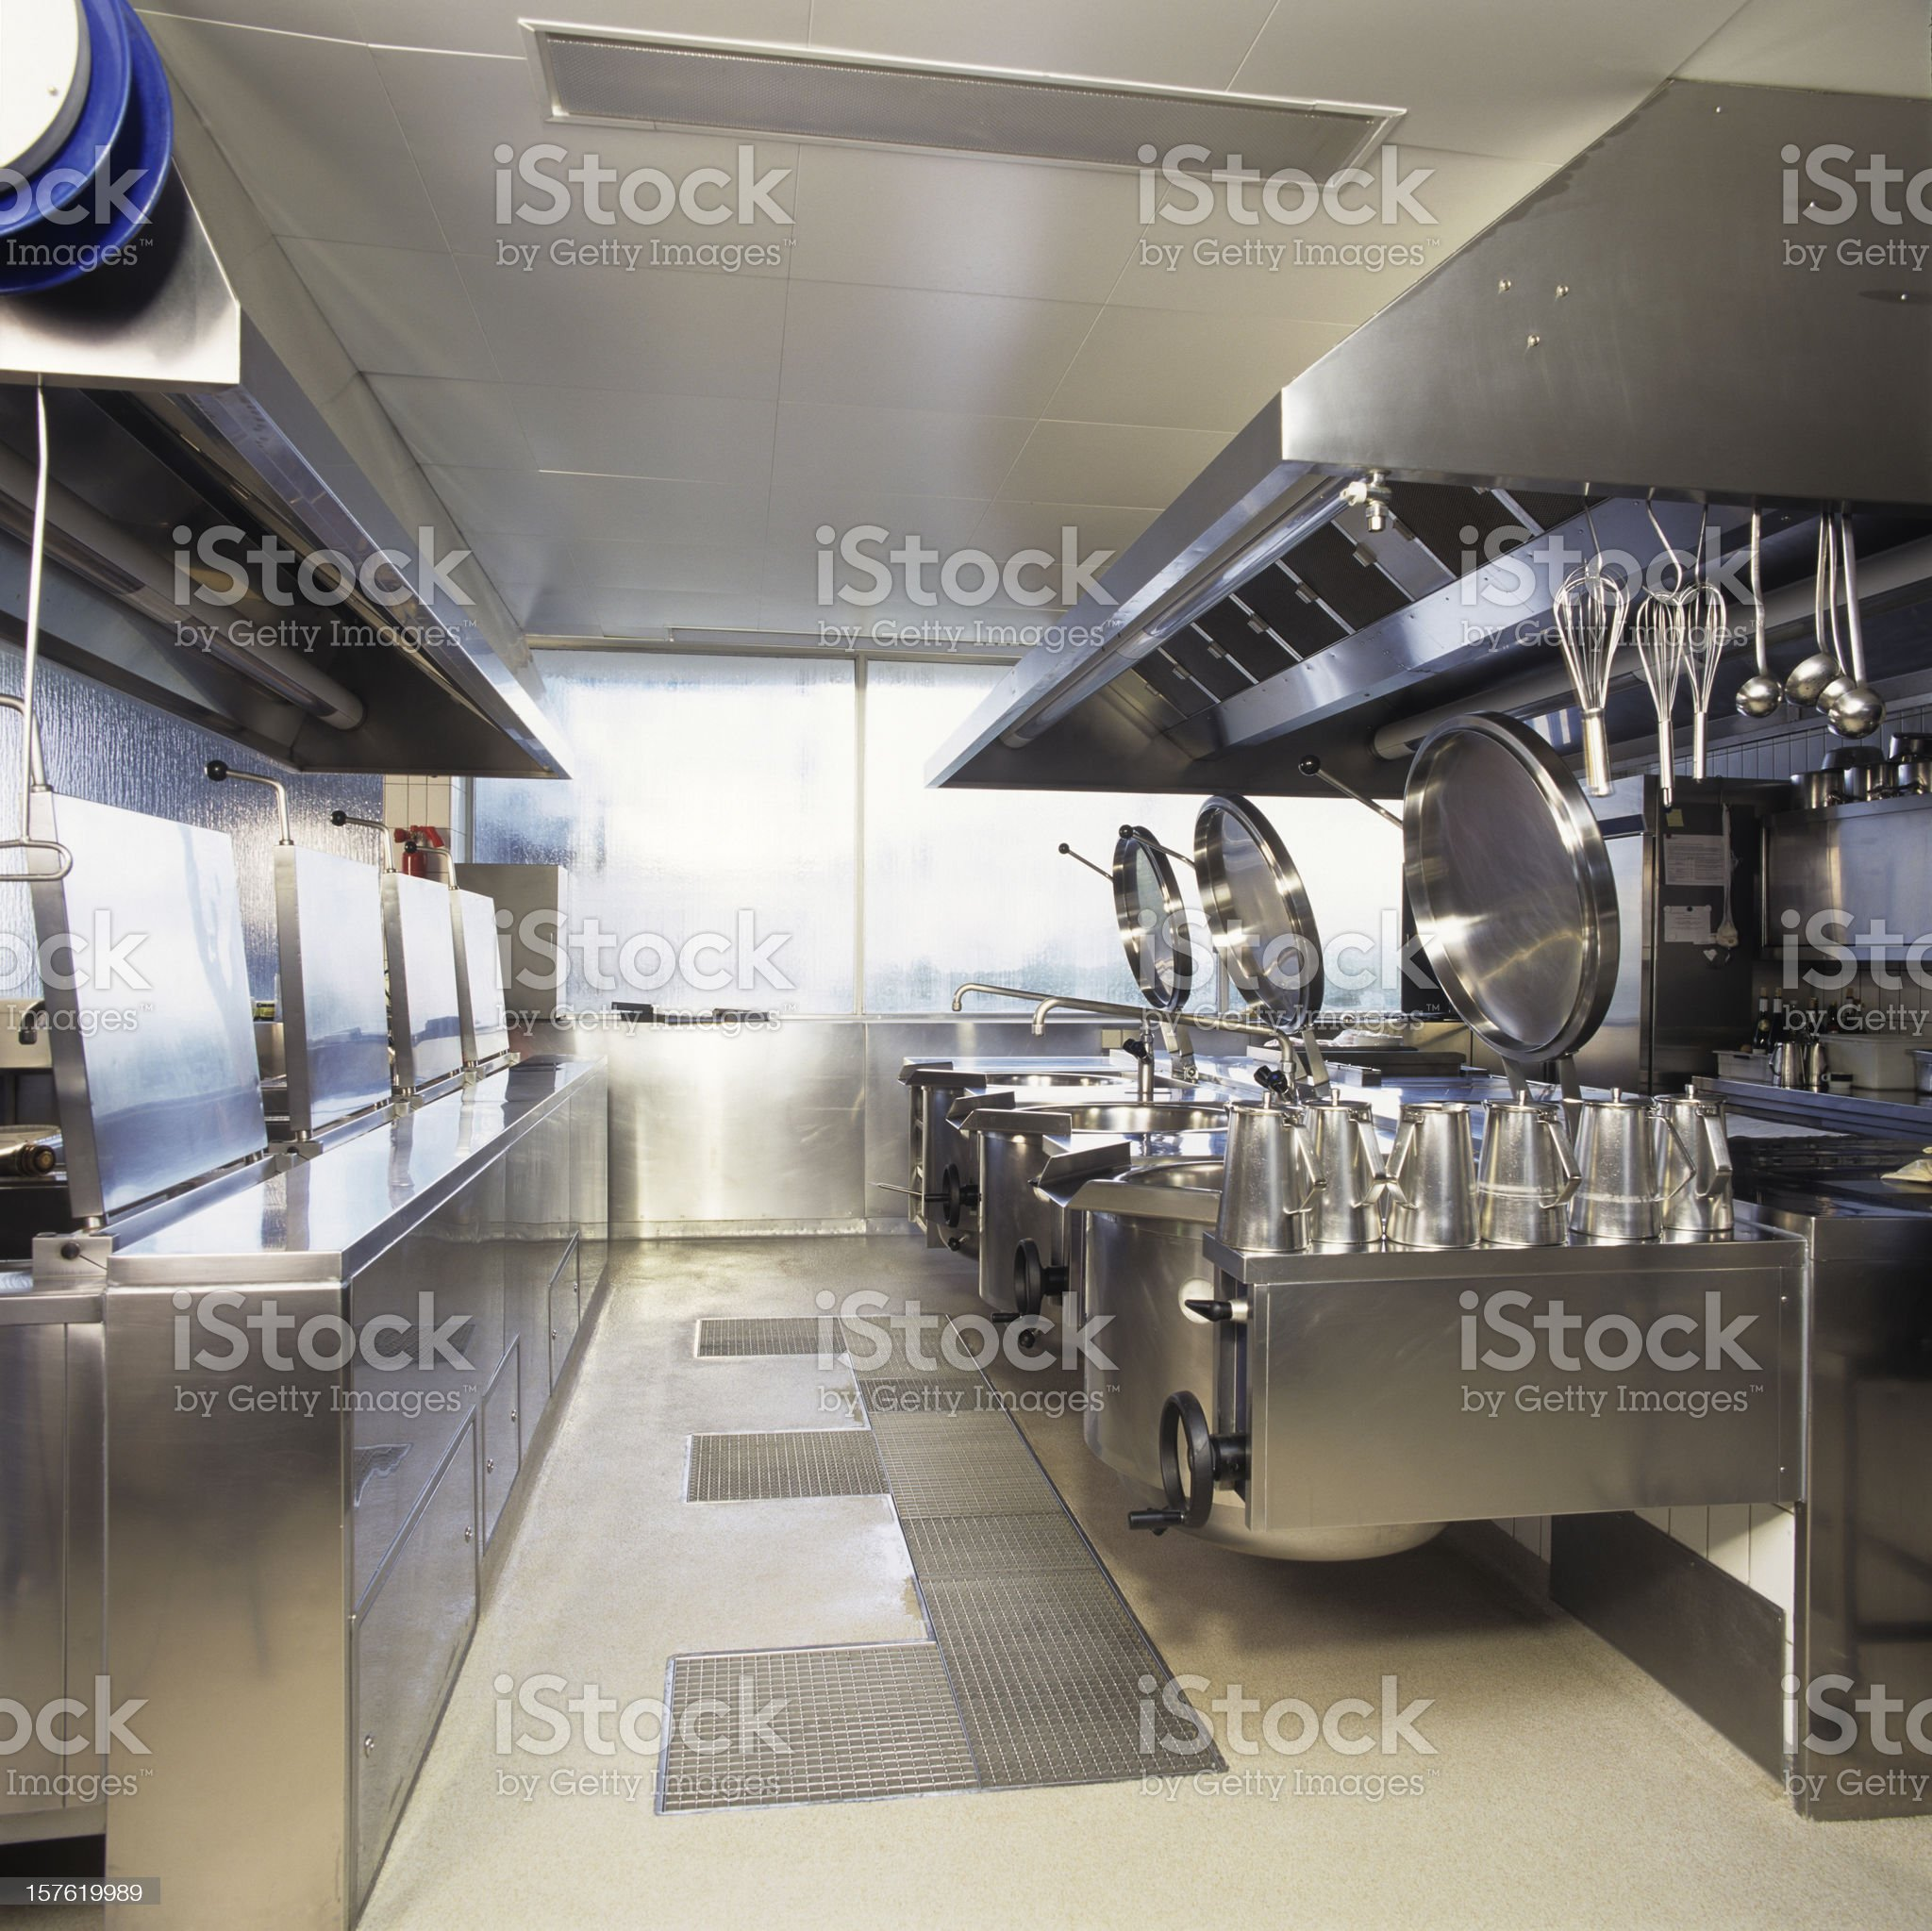 Empty clean industrial kitchen royalty-free stock photo